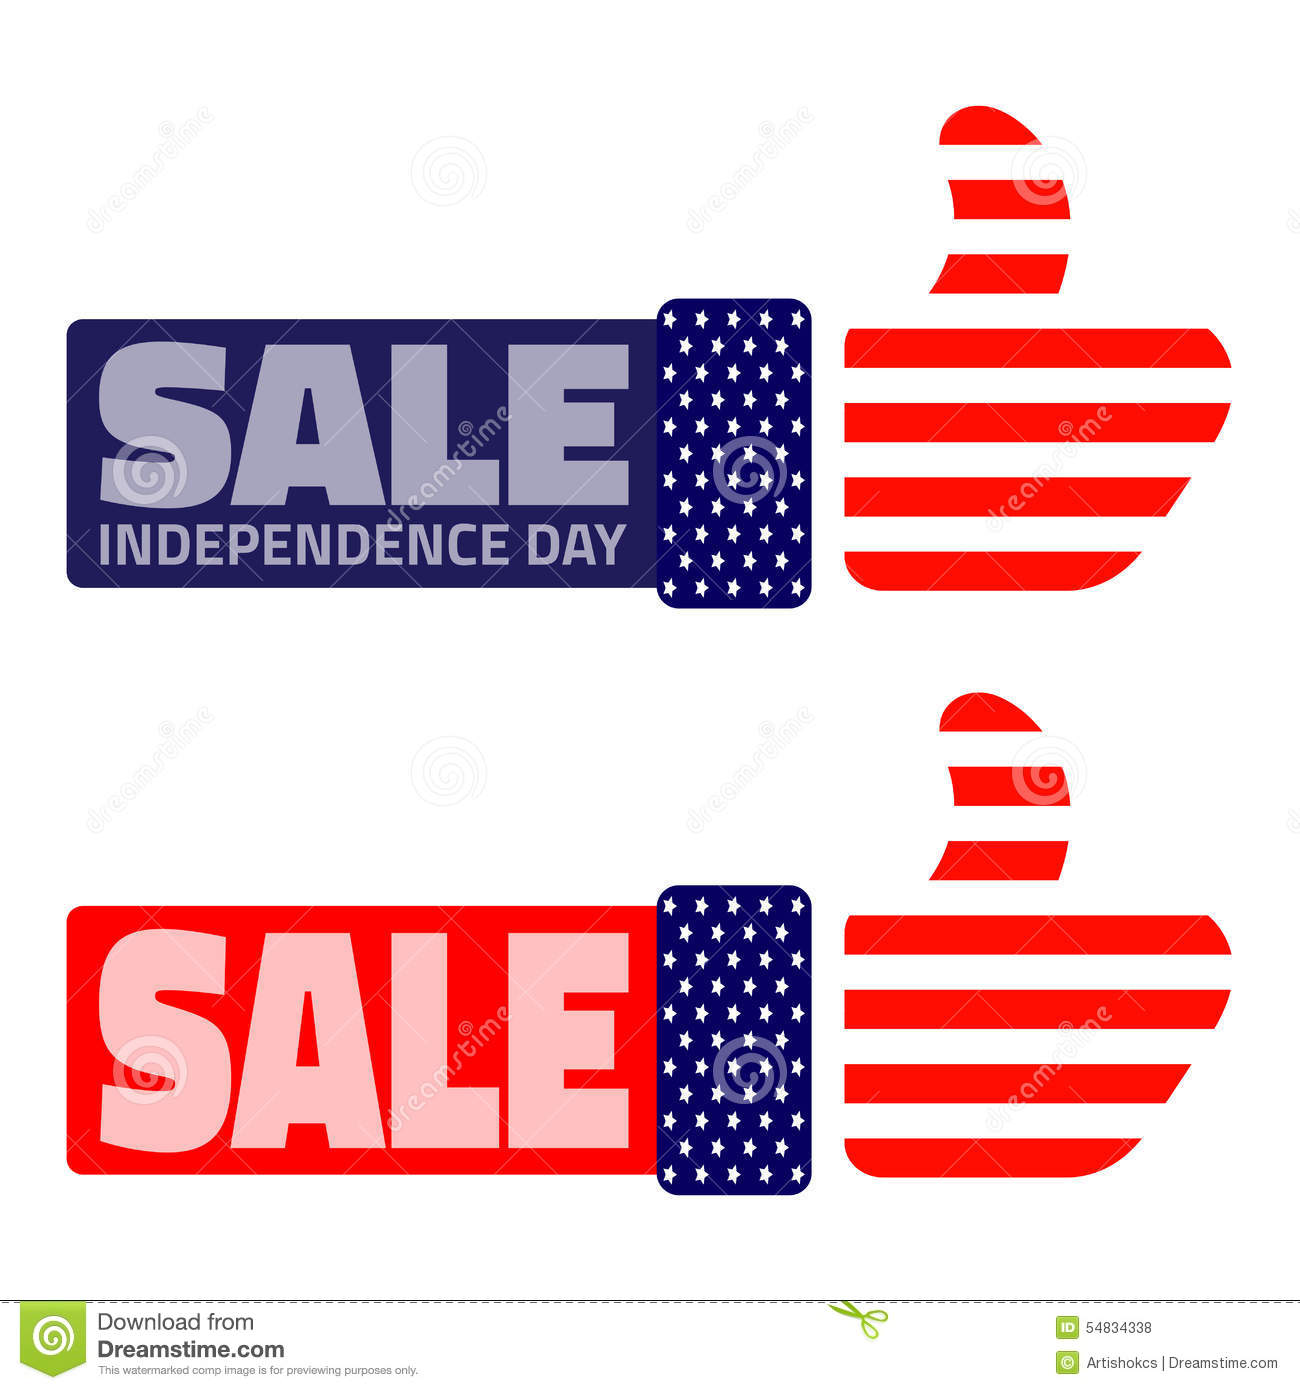 Labor Day is today, Monday, September 3, Find the best Labor Day sales, deals and coupons to save up to 80% off at popular stores. Check back to see updated sale information!